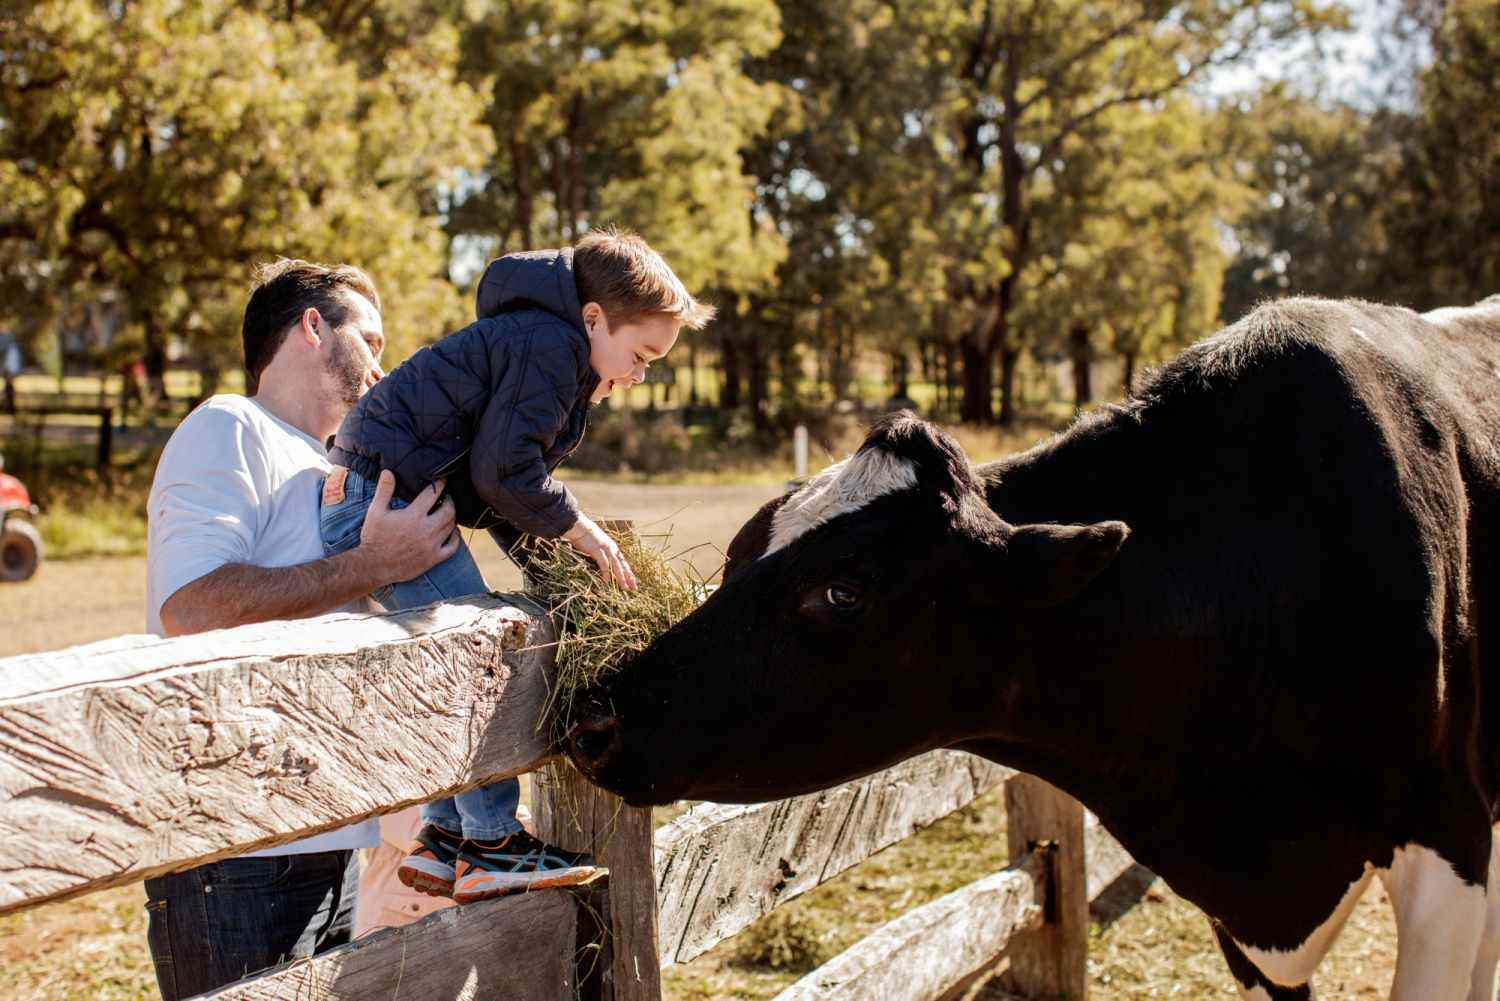 Child being held up by adult to feed cow over fence.